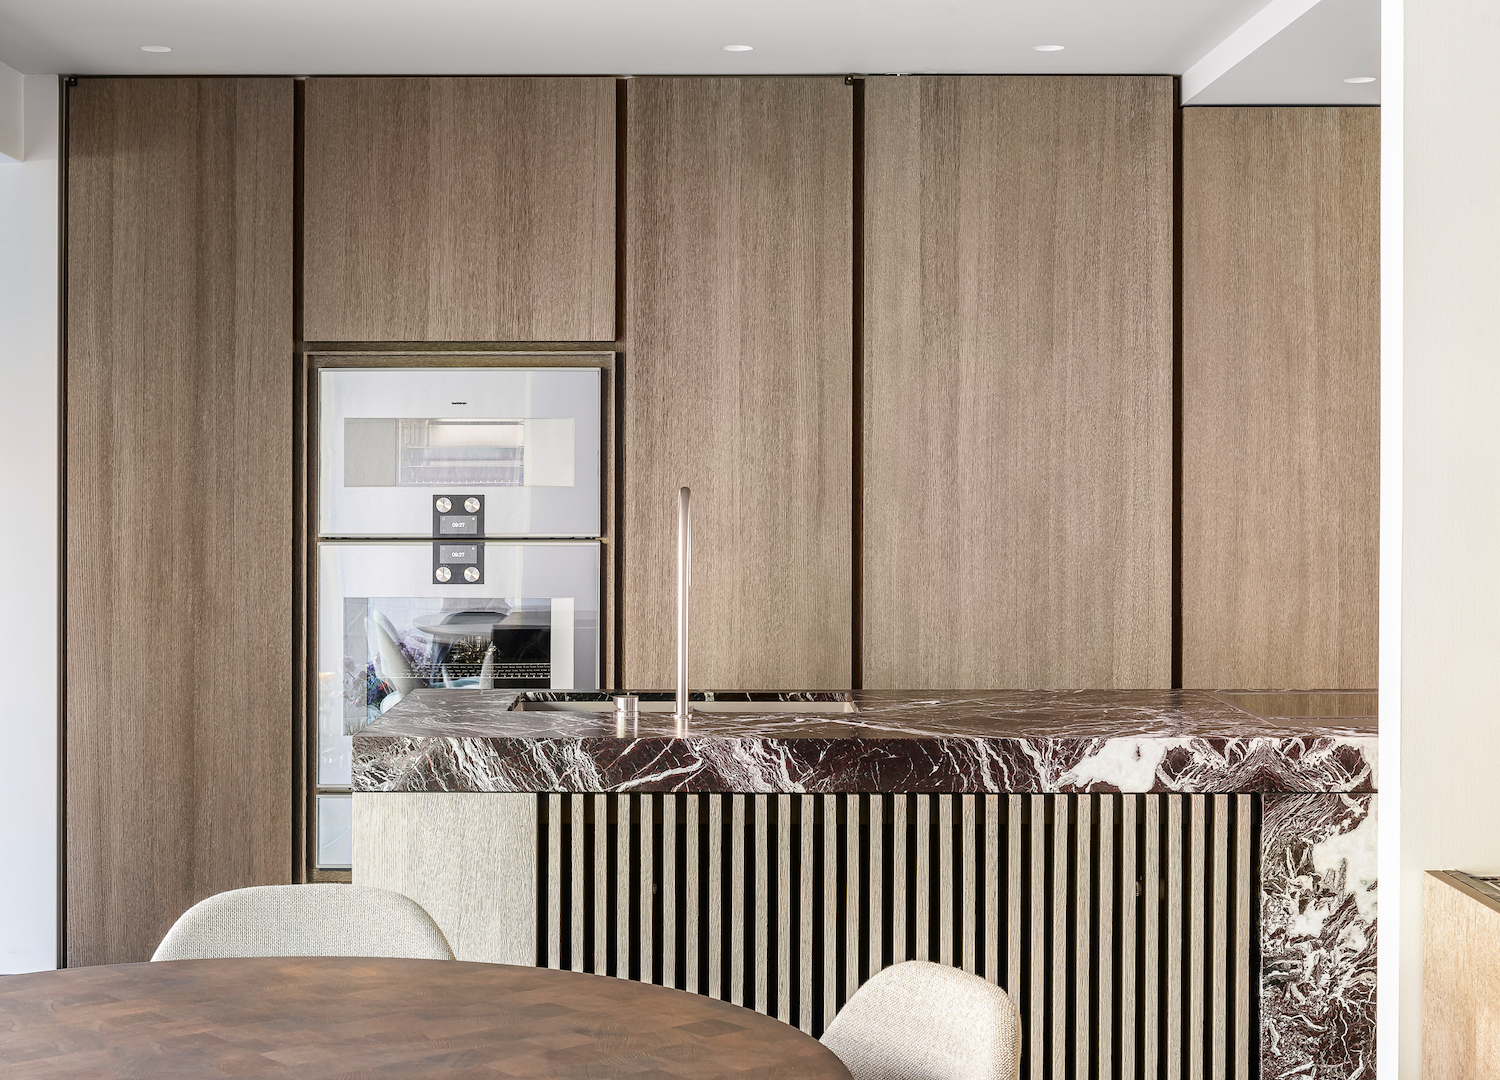 est living dejaegher interieur architecten belgian kitchens 3